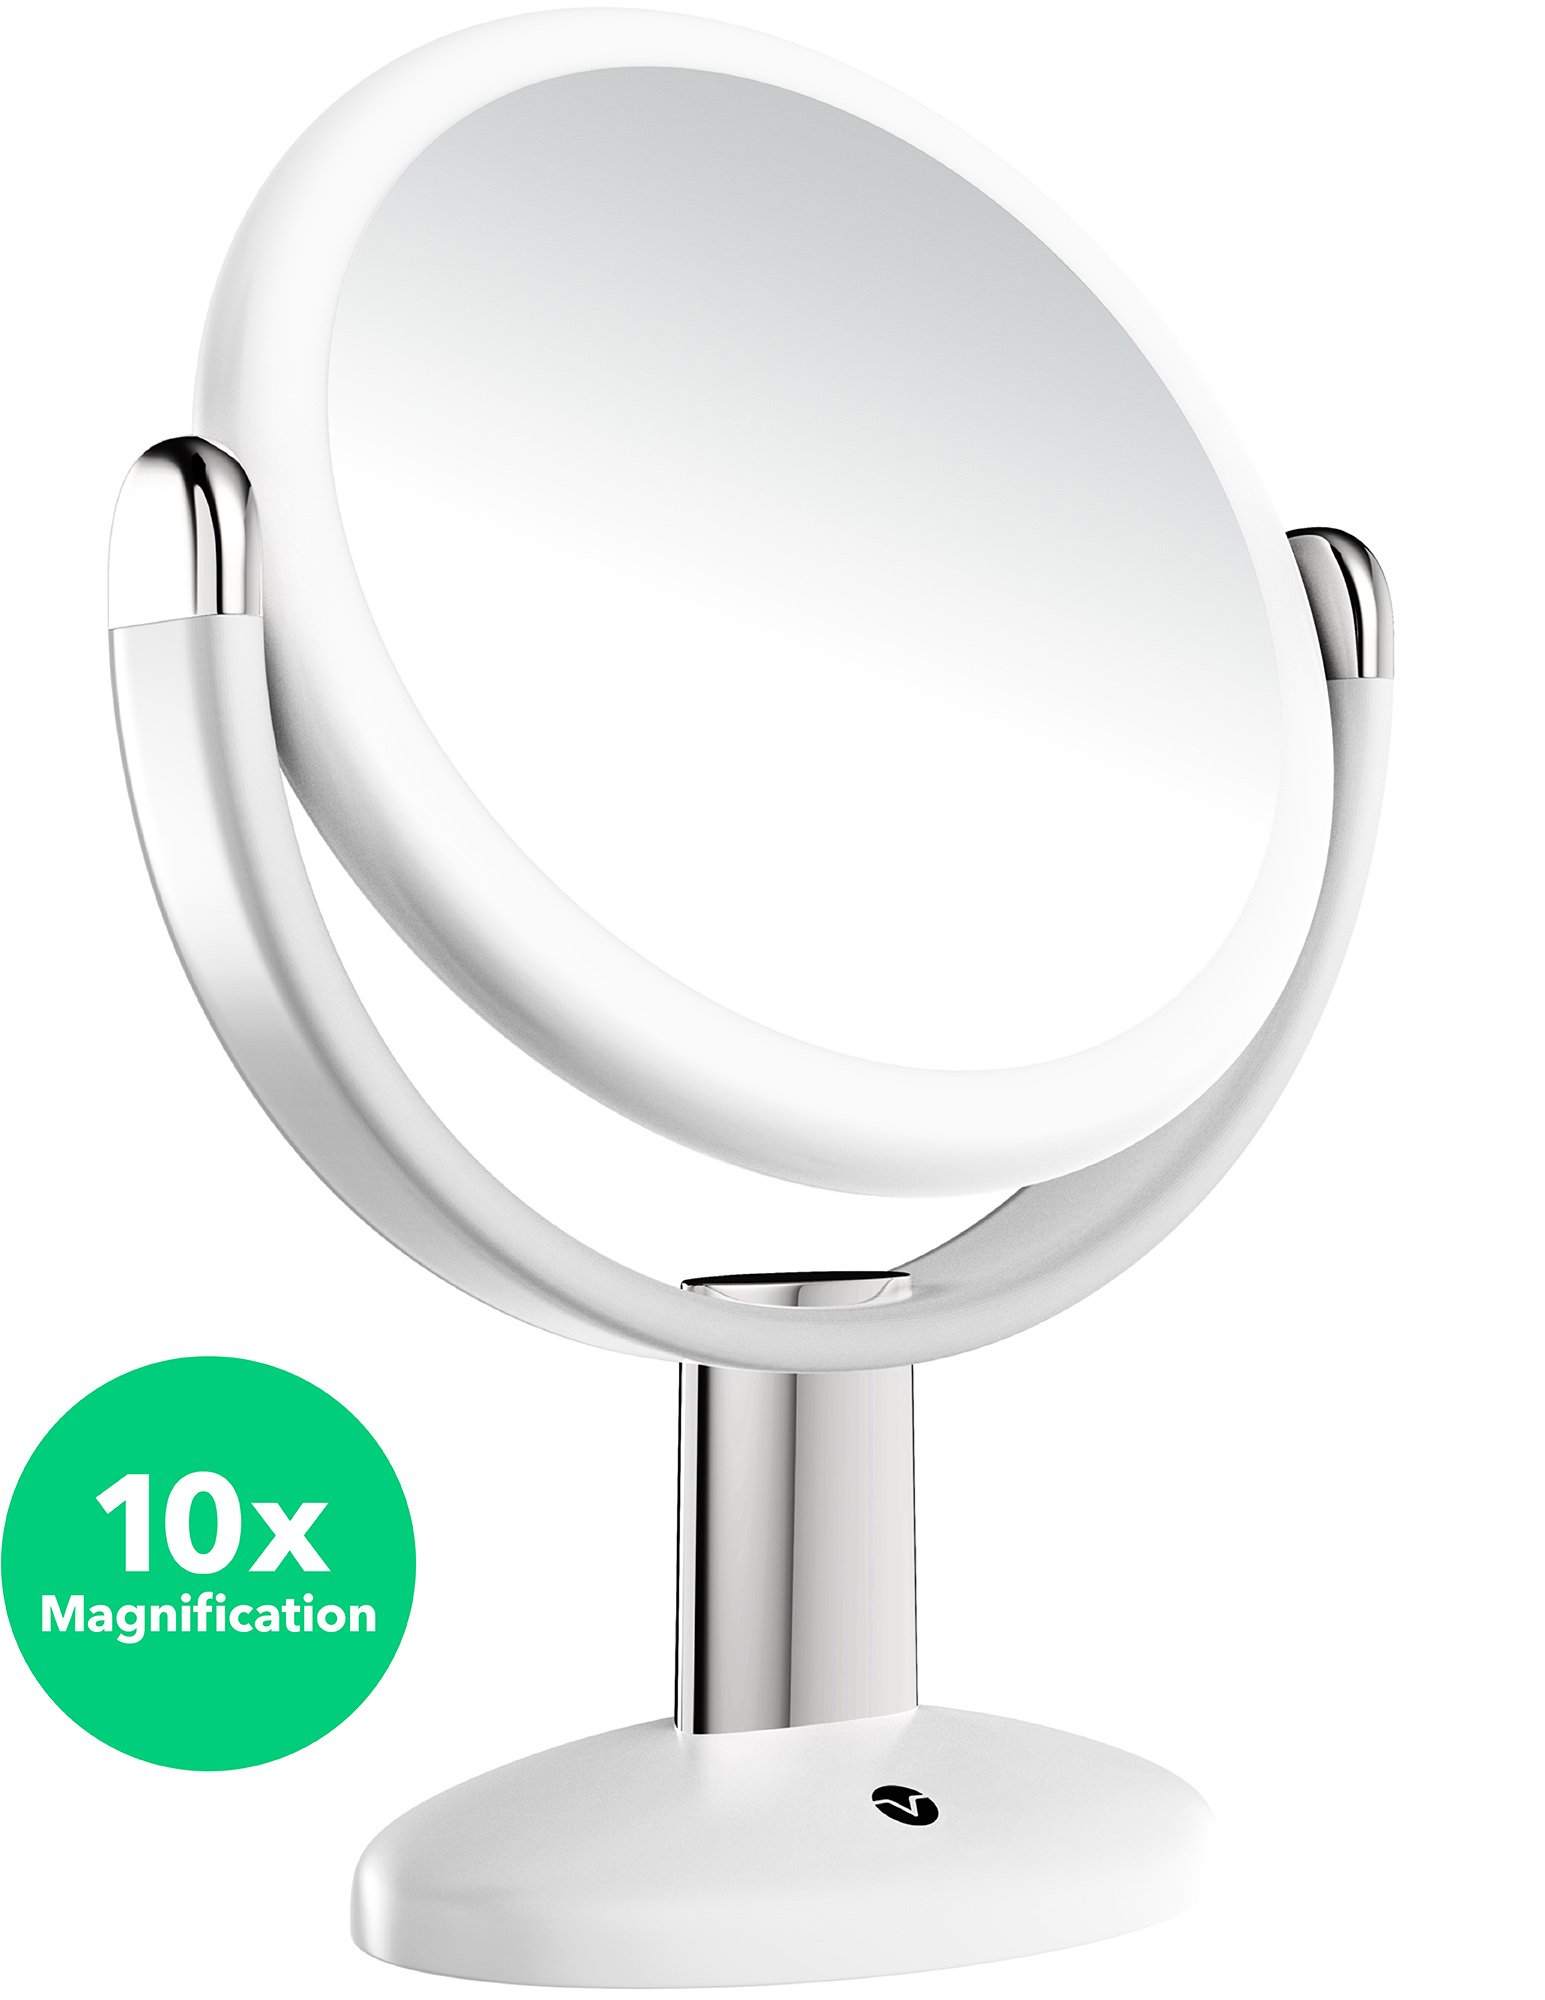 Vremi 10x Magnified Vanity Mirror - 7 Inch Round Makeup Cosmetic Mirror for Bathroom or Bedroom Table Top - Portable Double Sided Glass Mirror Stand with 360 Degree Swivel - White